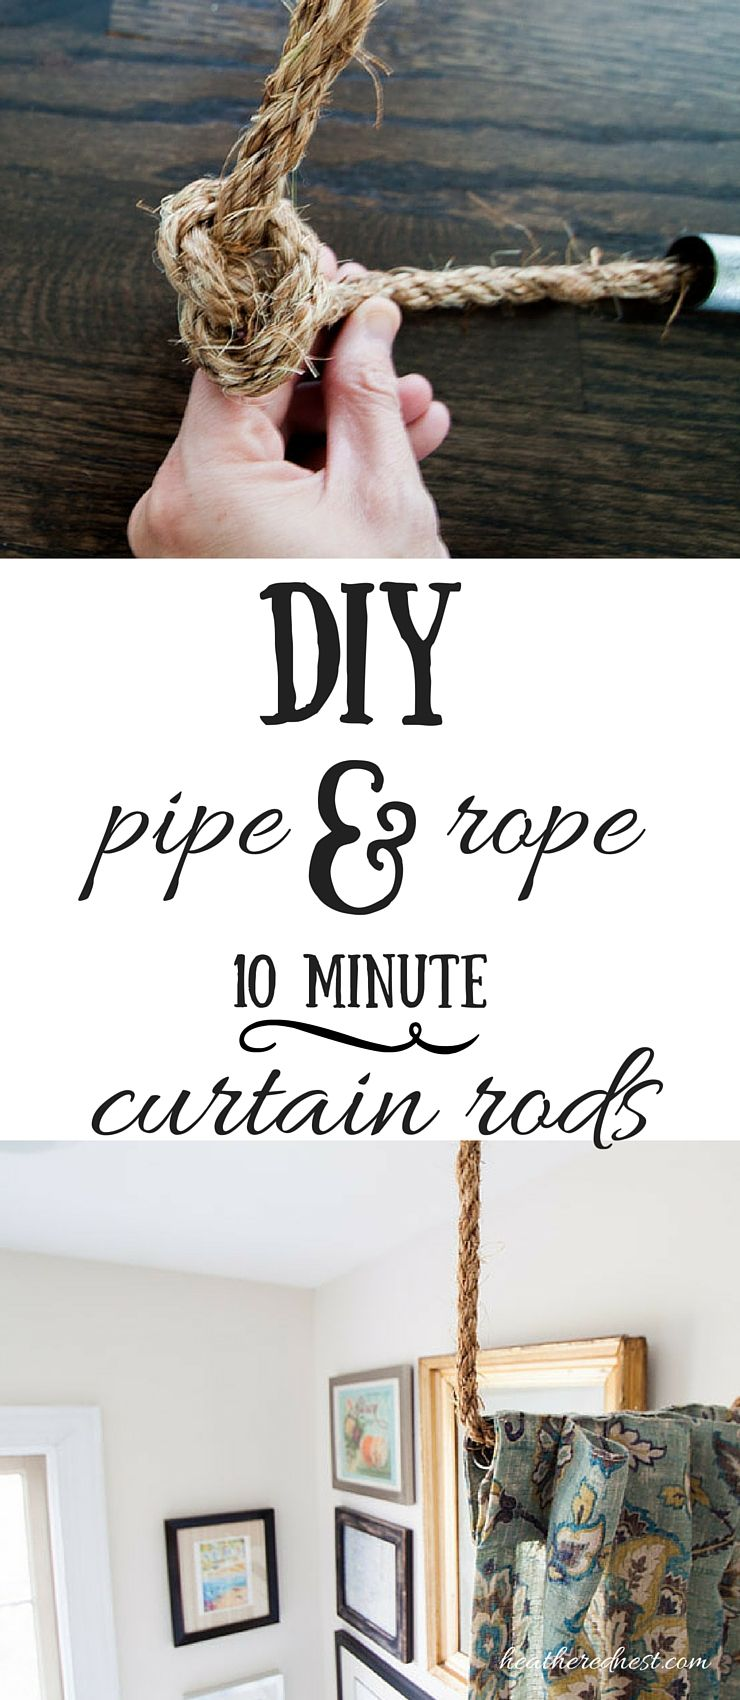 Here S How To Make Your Own Diy Curtain Rod In 10 Minutes